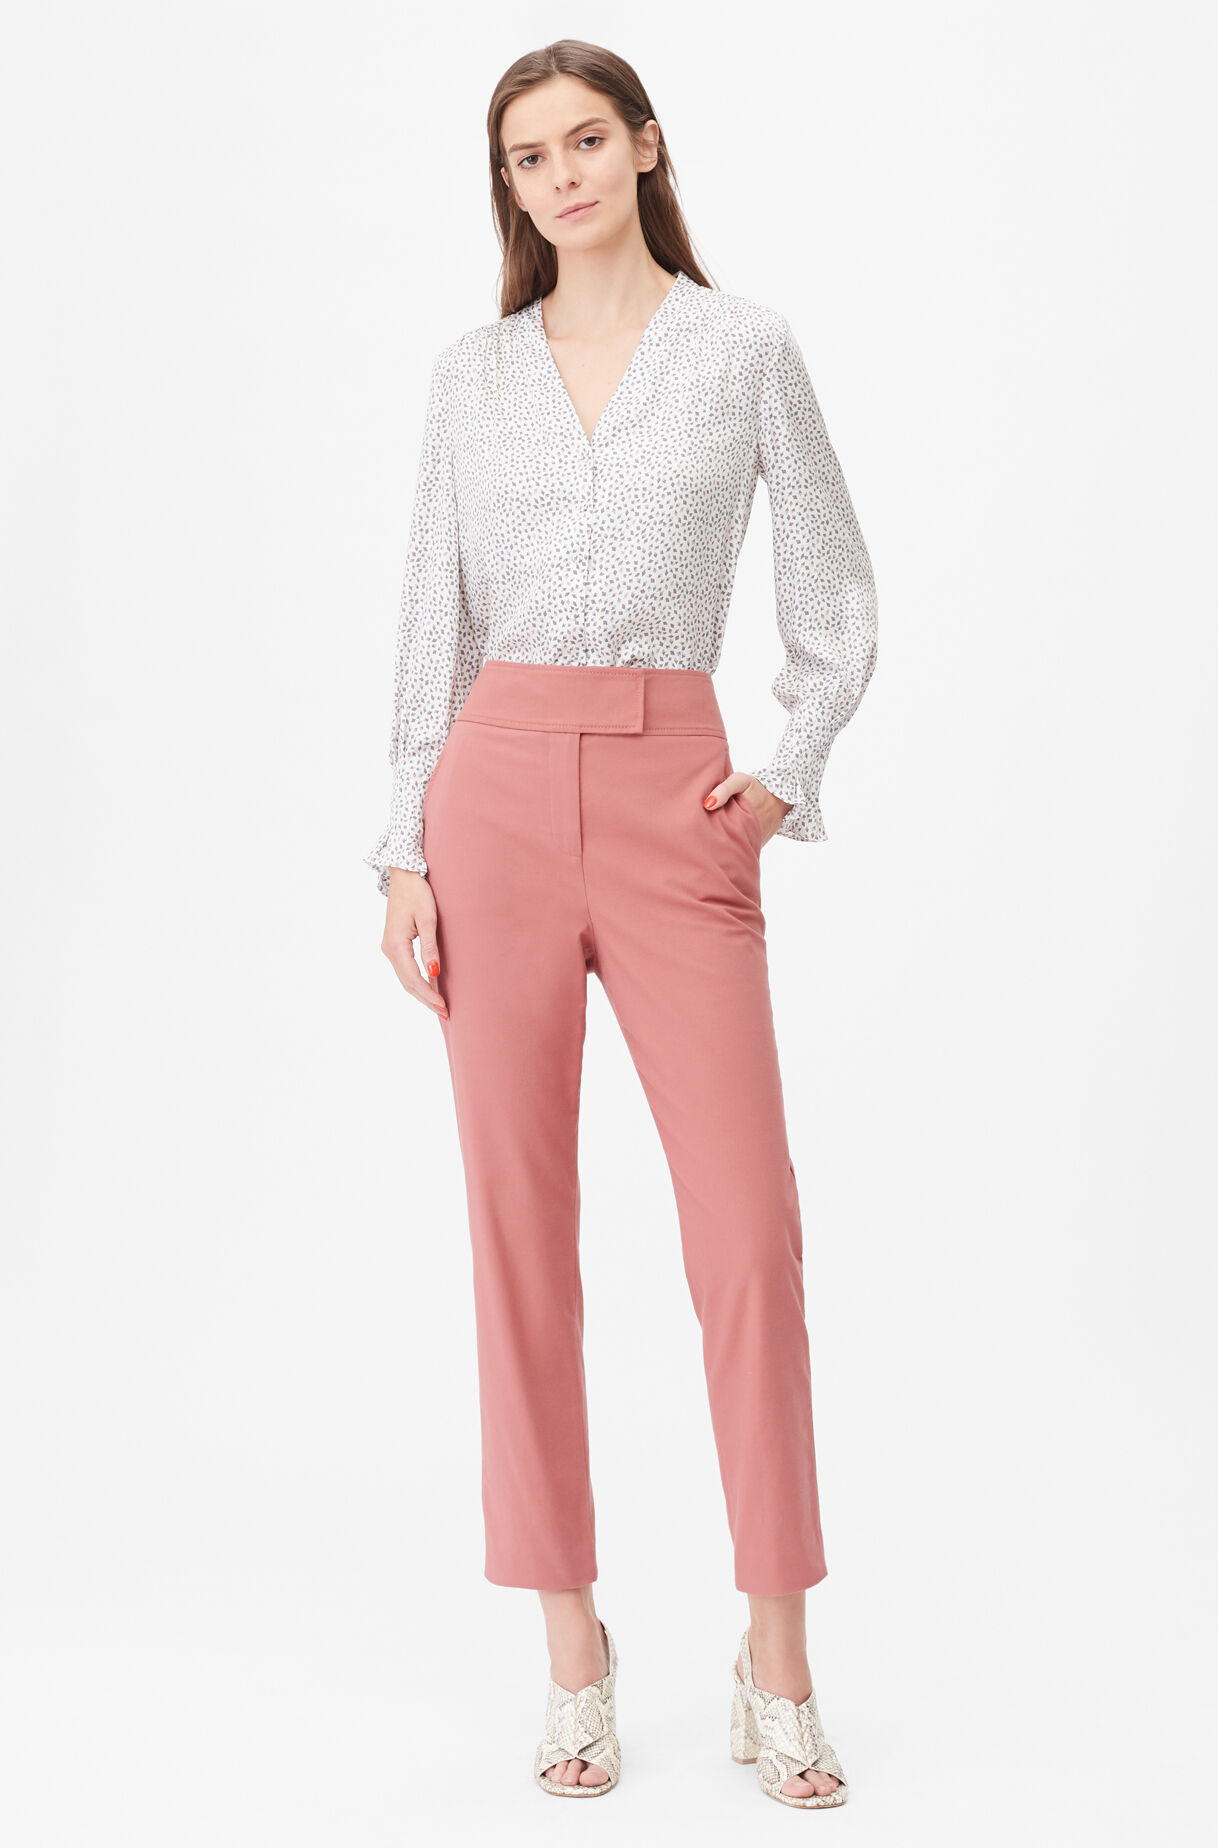 Tailored Stretch Modern Suiting Pant, , large